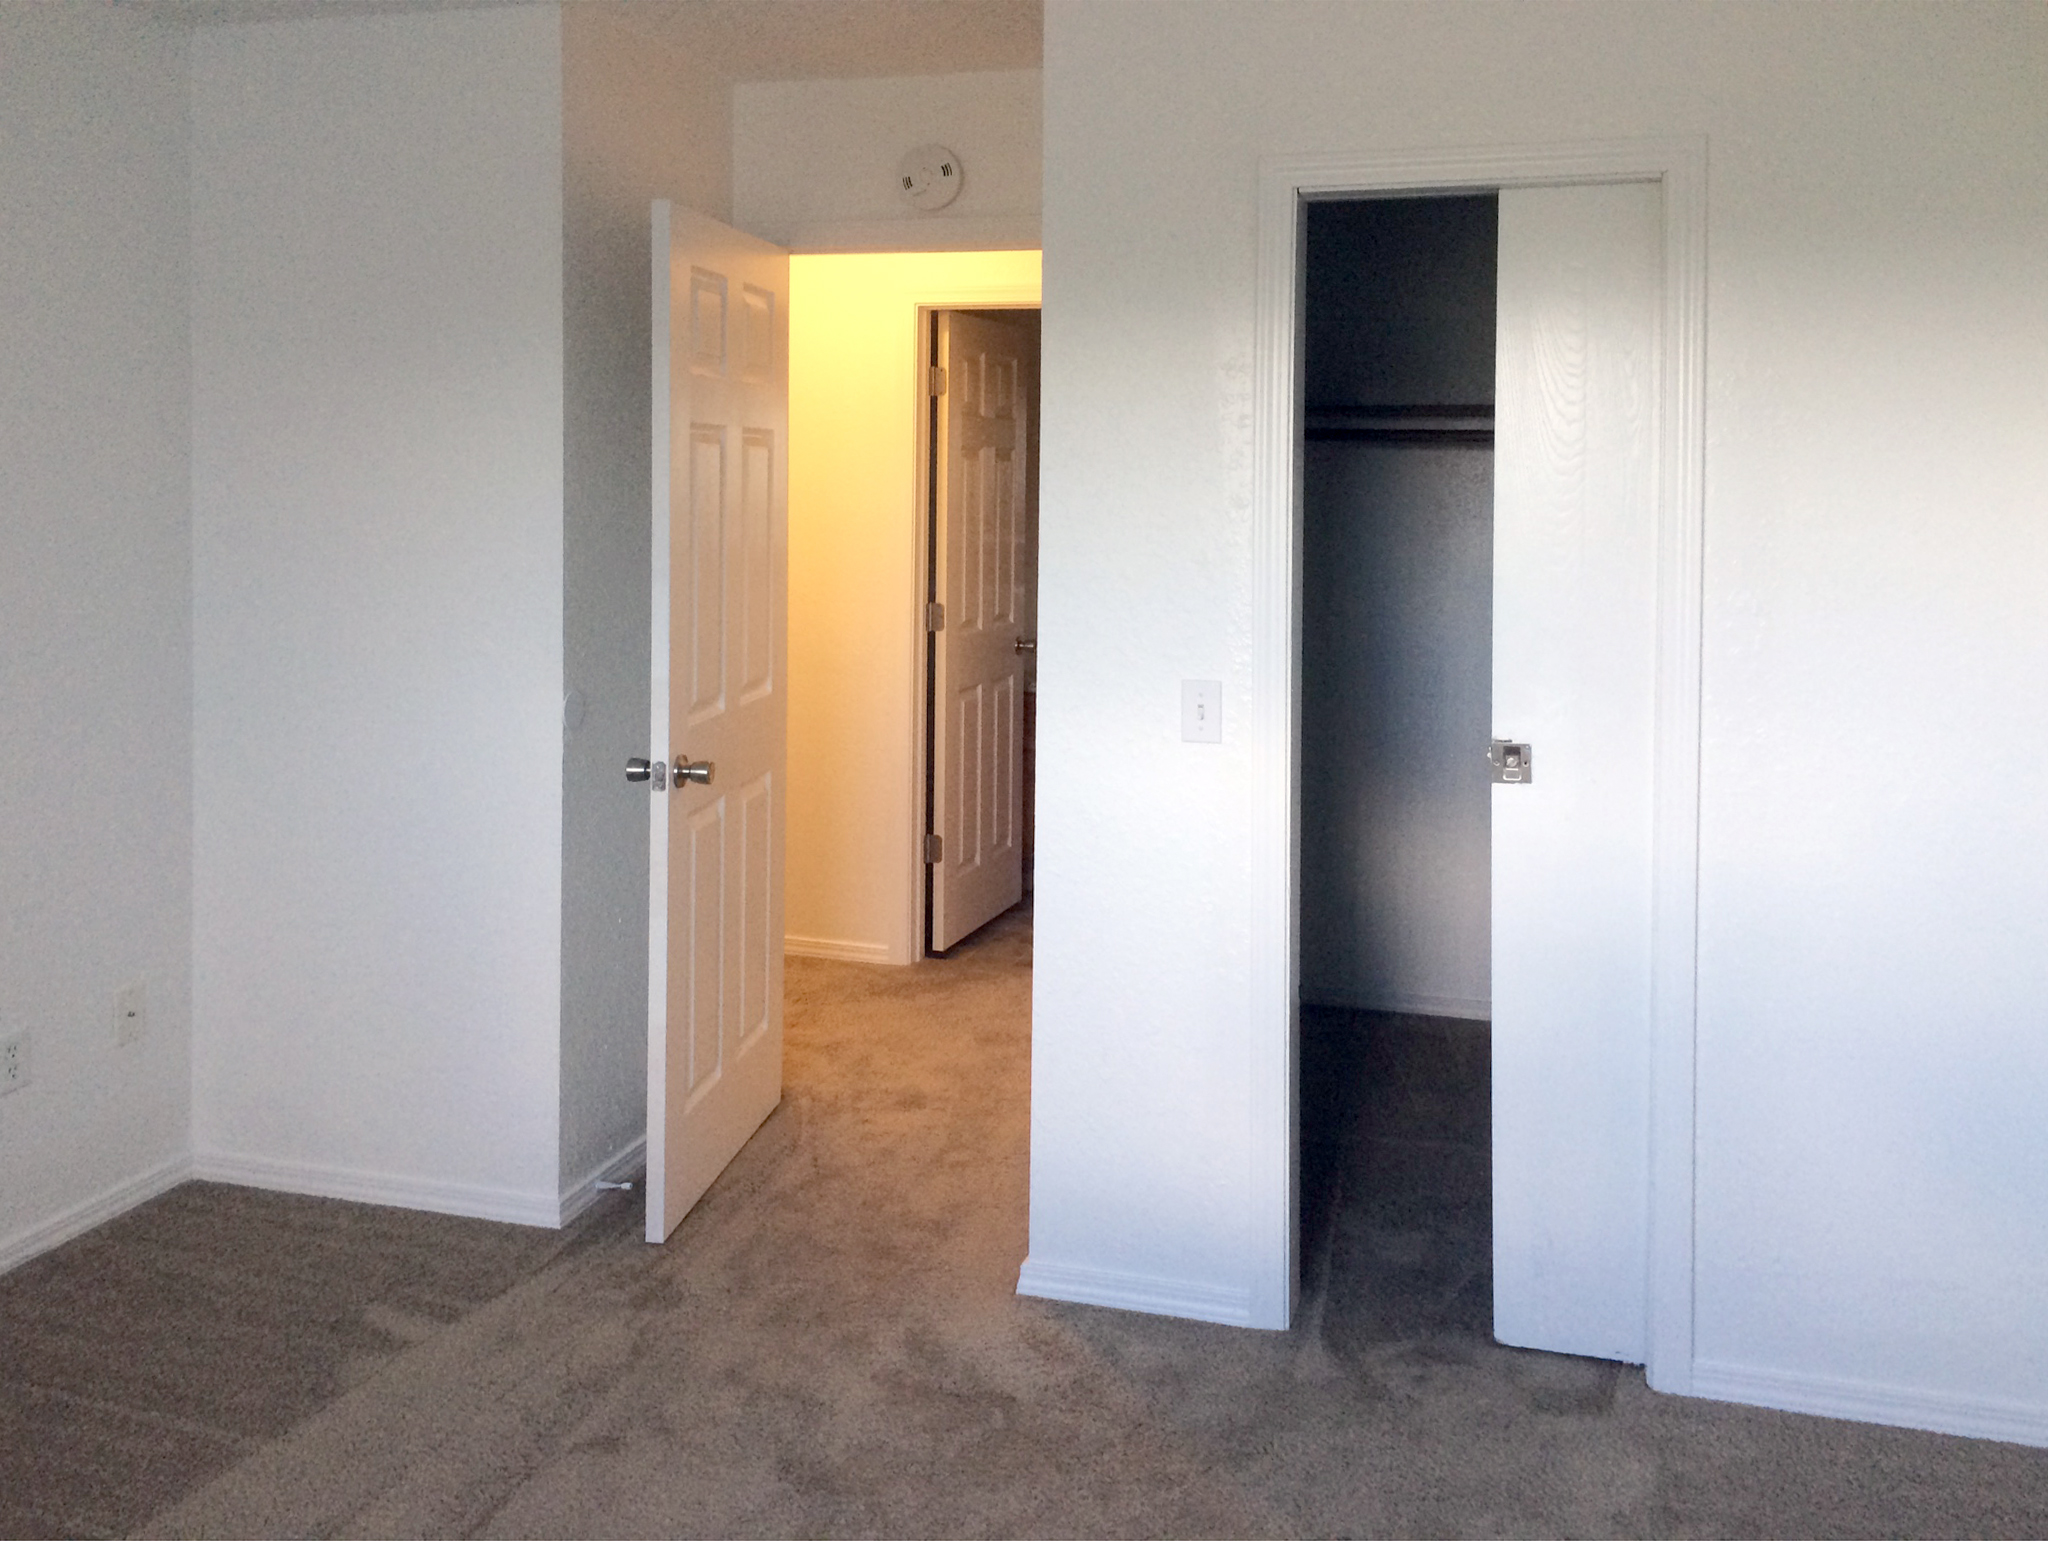 Master bedroom with spacious walk-in closet